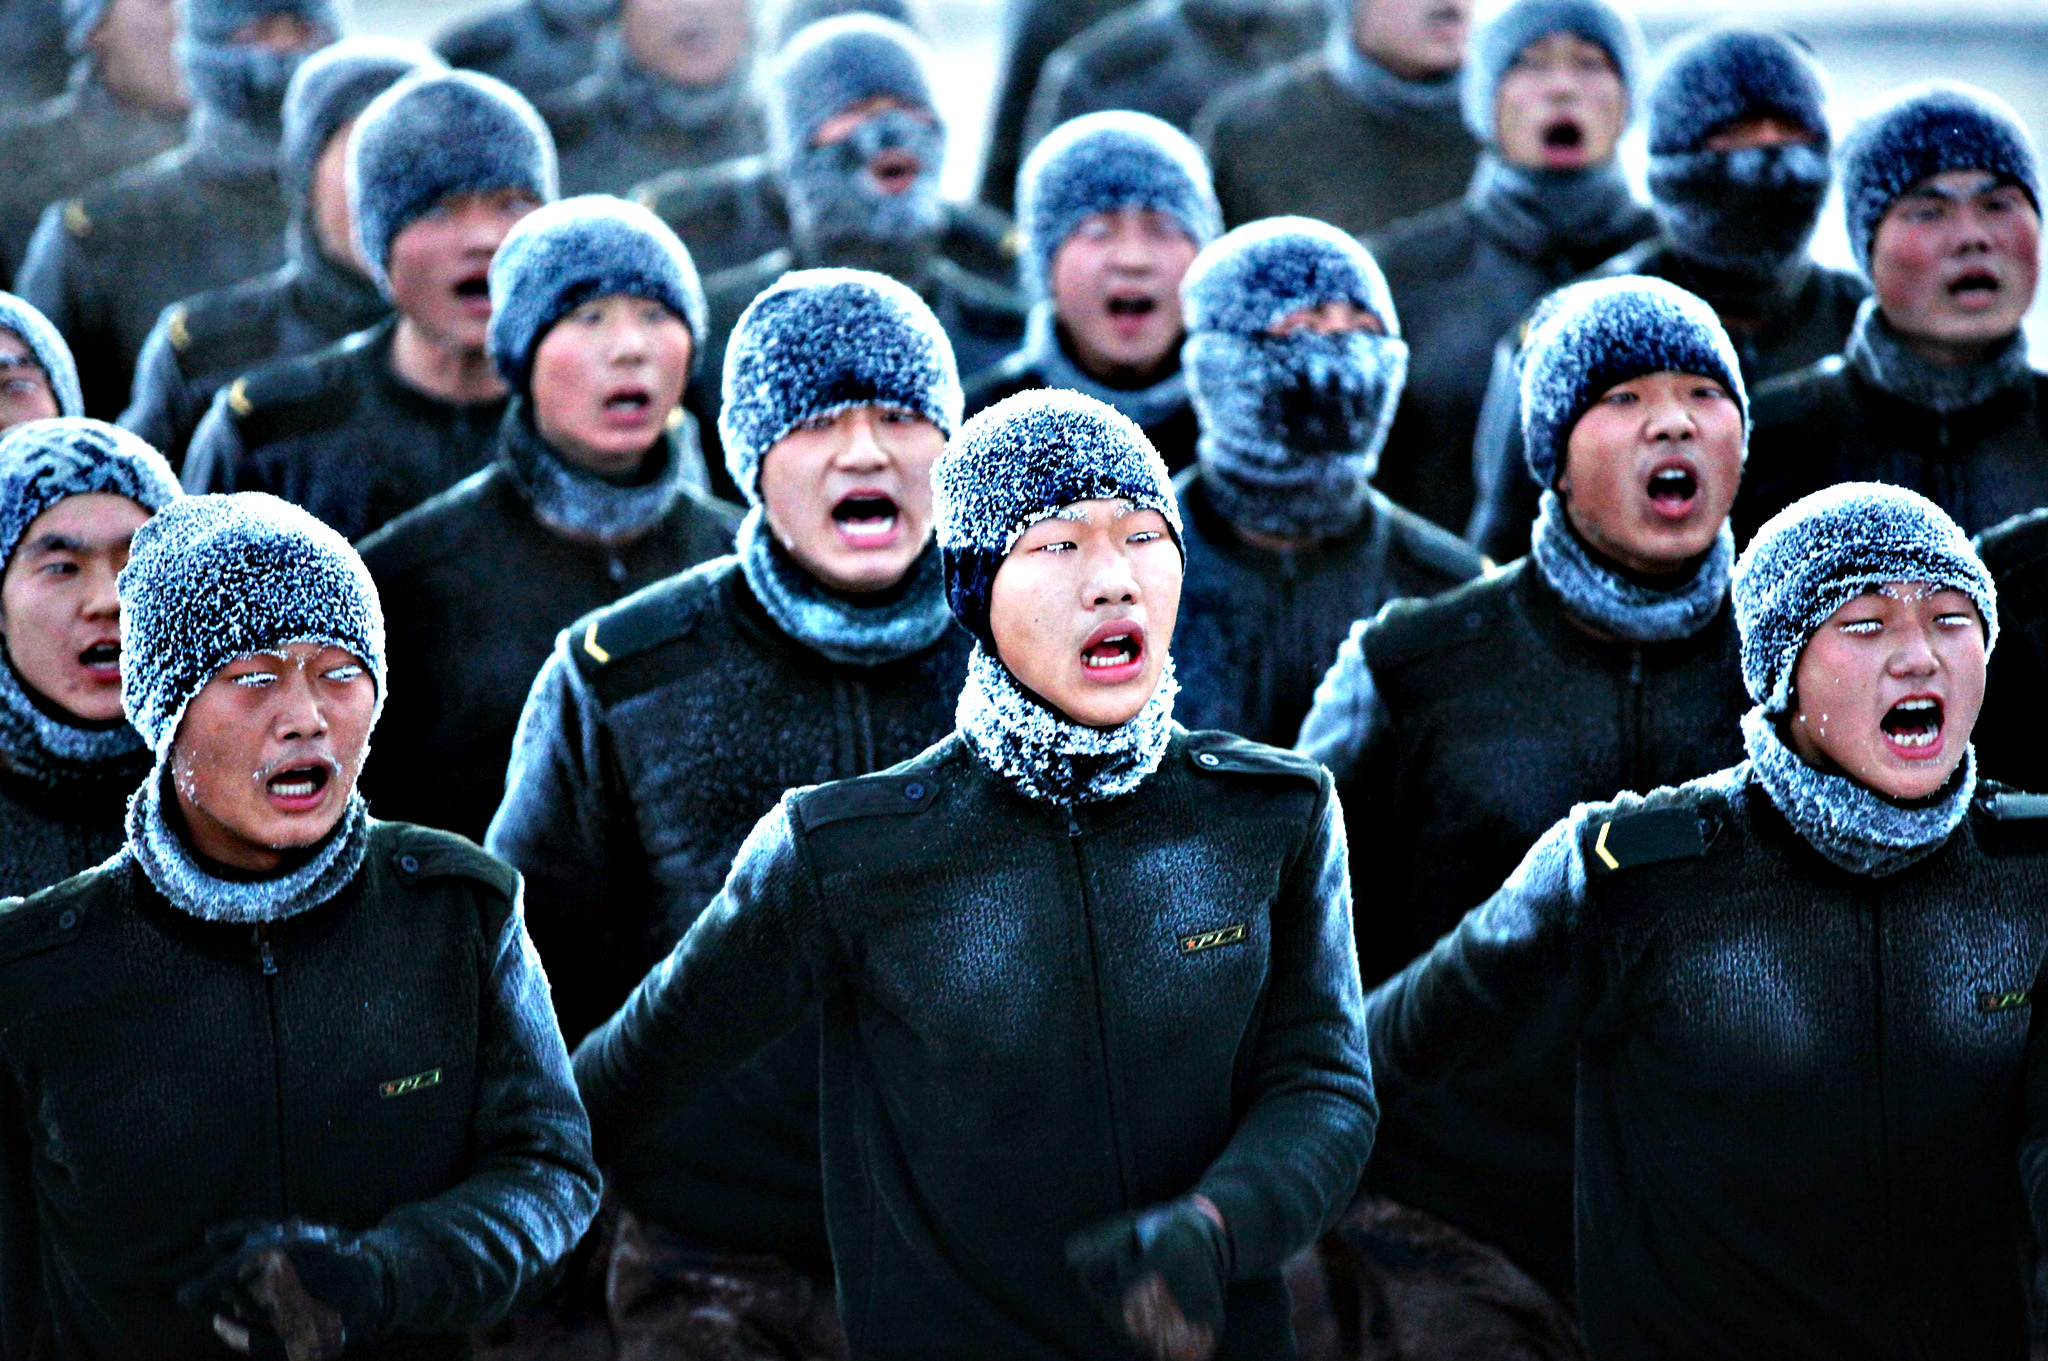 Soldiers shout as they practise in temperatures of about minus 30 degrees centigrade (-22 F) in Heihe, Heilongjiang province